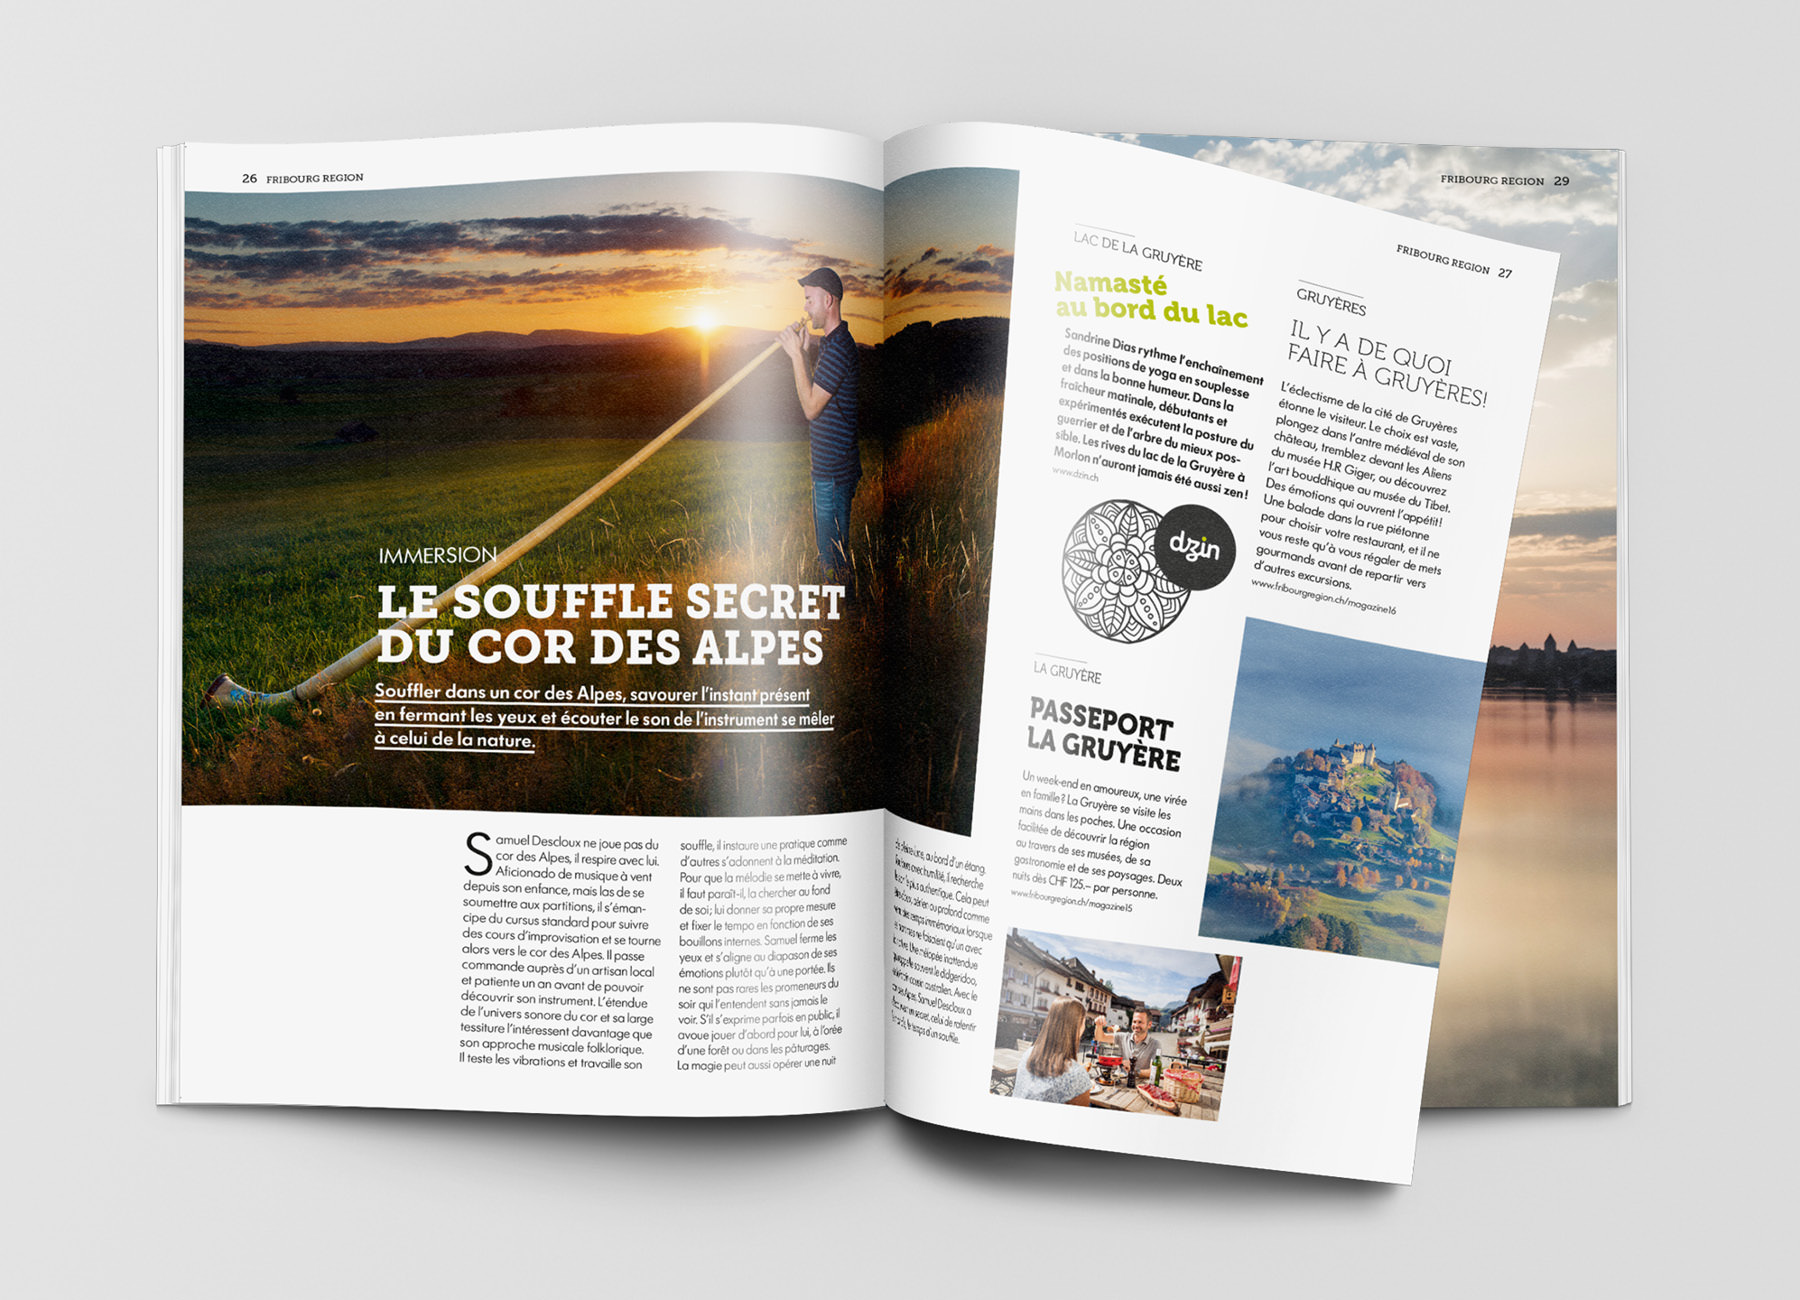 fribourg region magazine tourisme authentique